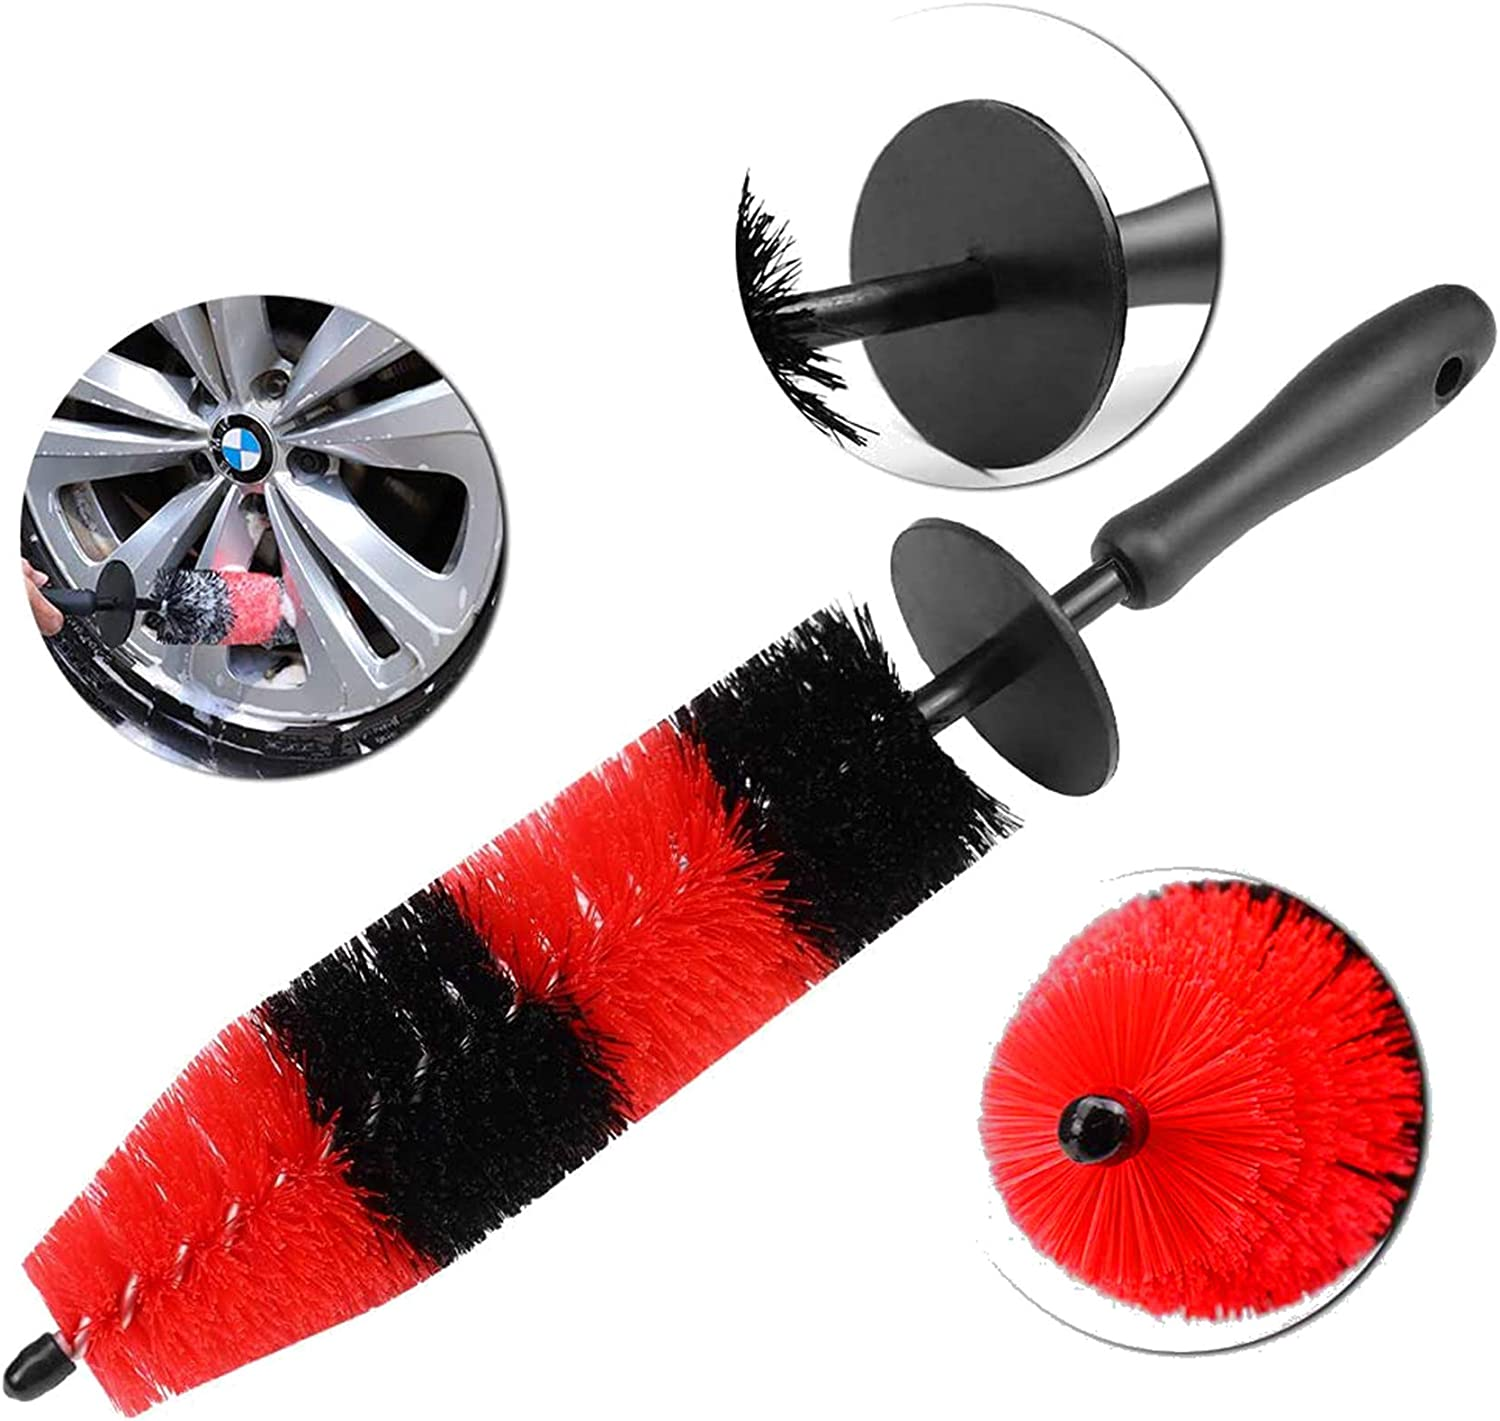 Wheel Brush Detail Rim Car Cleaner with Long Handle Soft Bristle Motorcycle one